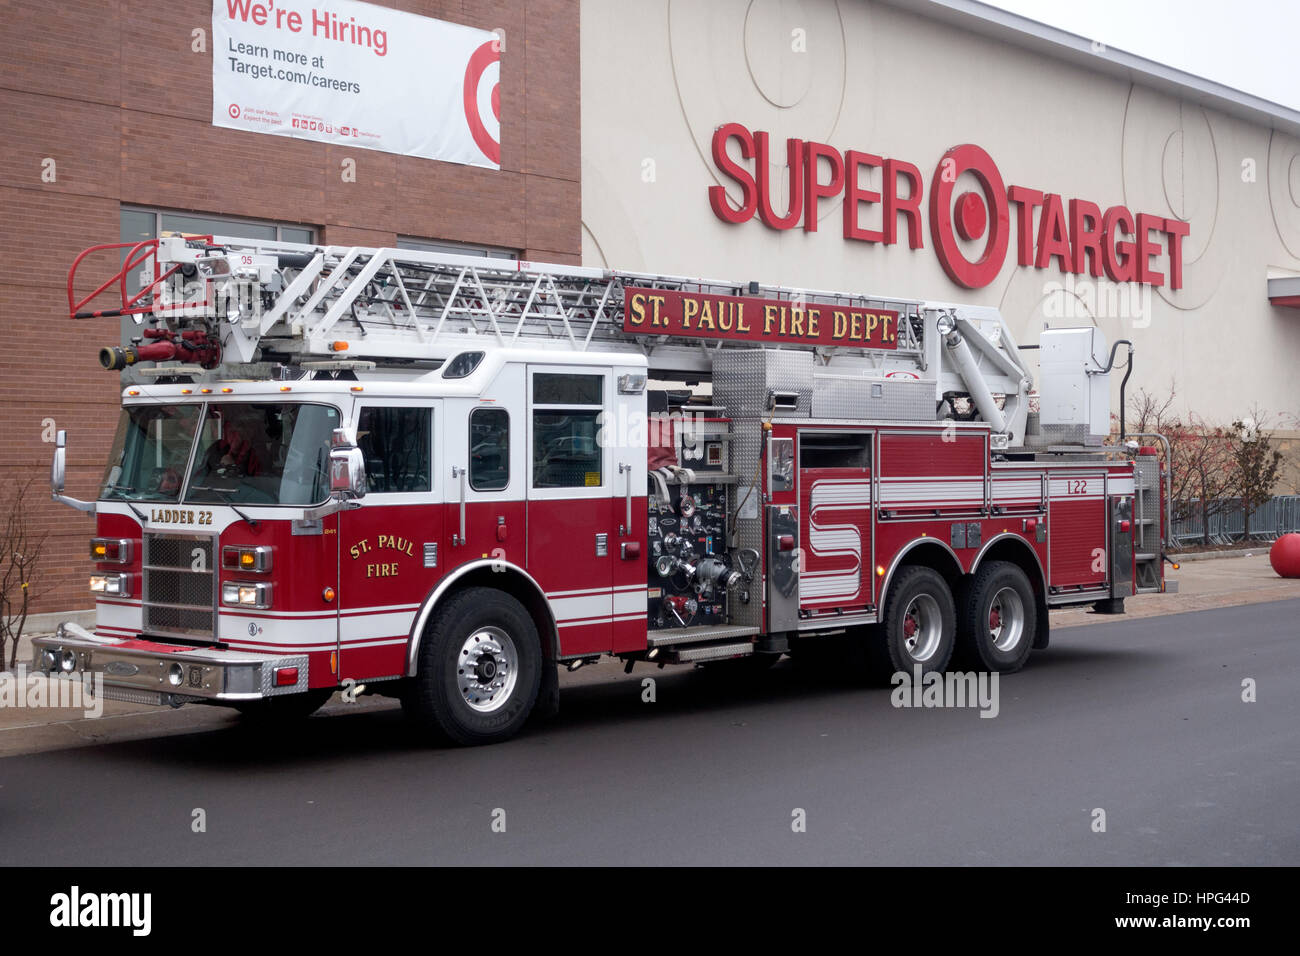 Fire Department Dept truck engine parked outside Super Target picking up supplies and food. St Paul Minnesota MN - Stock Image